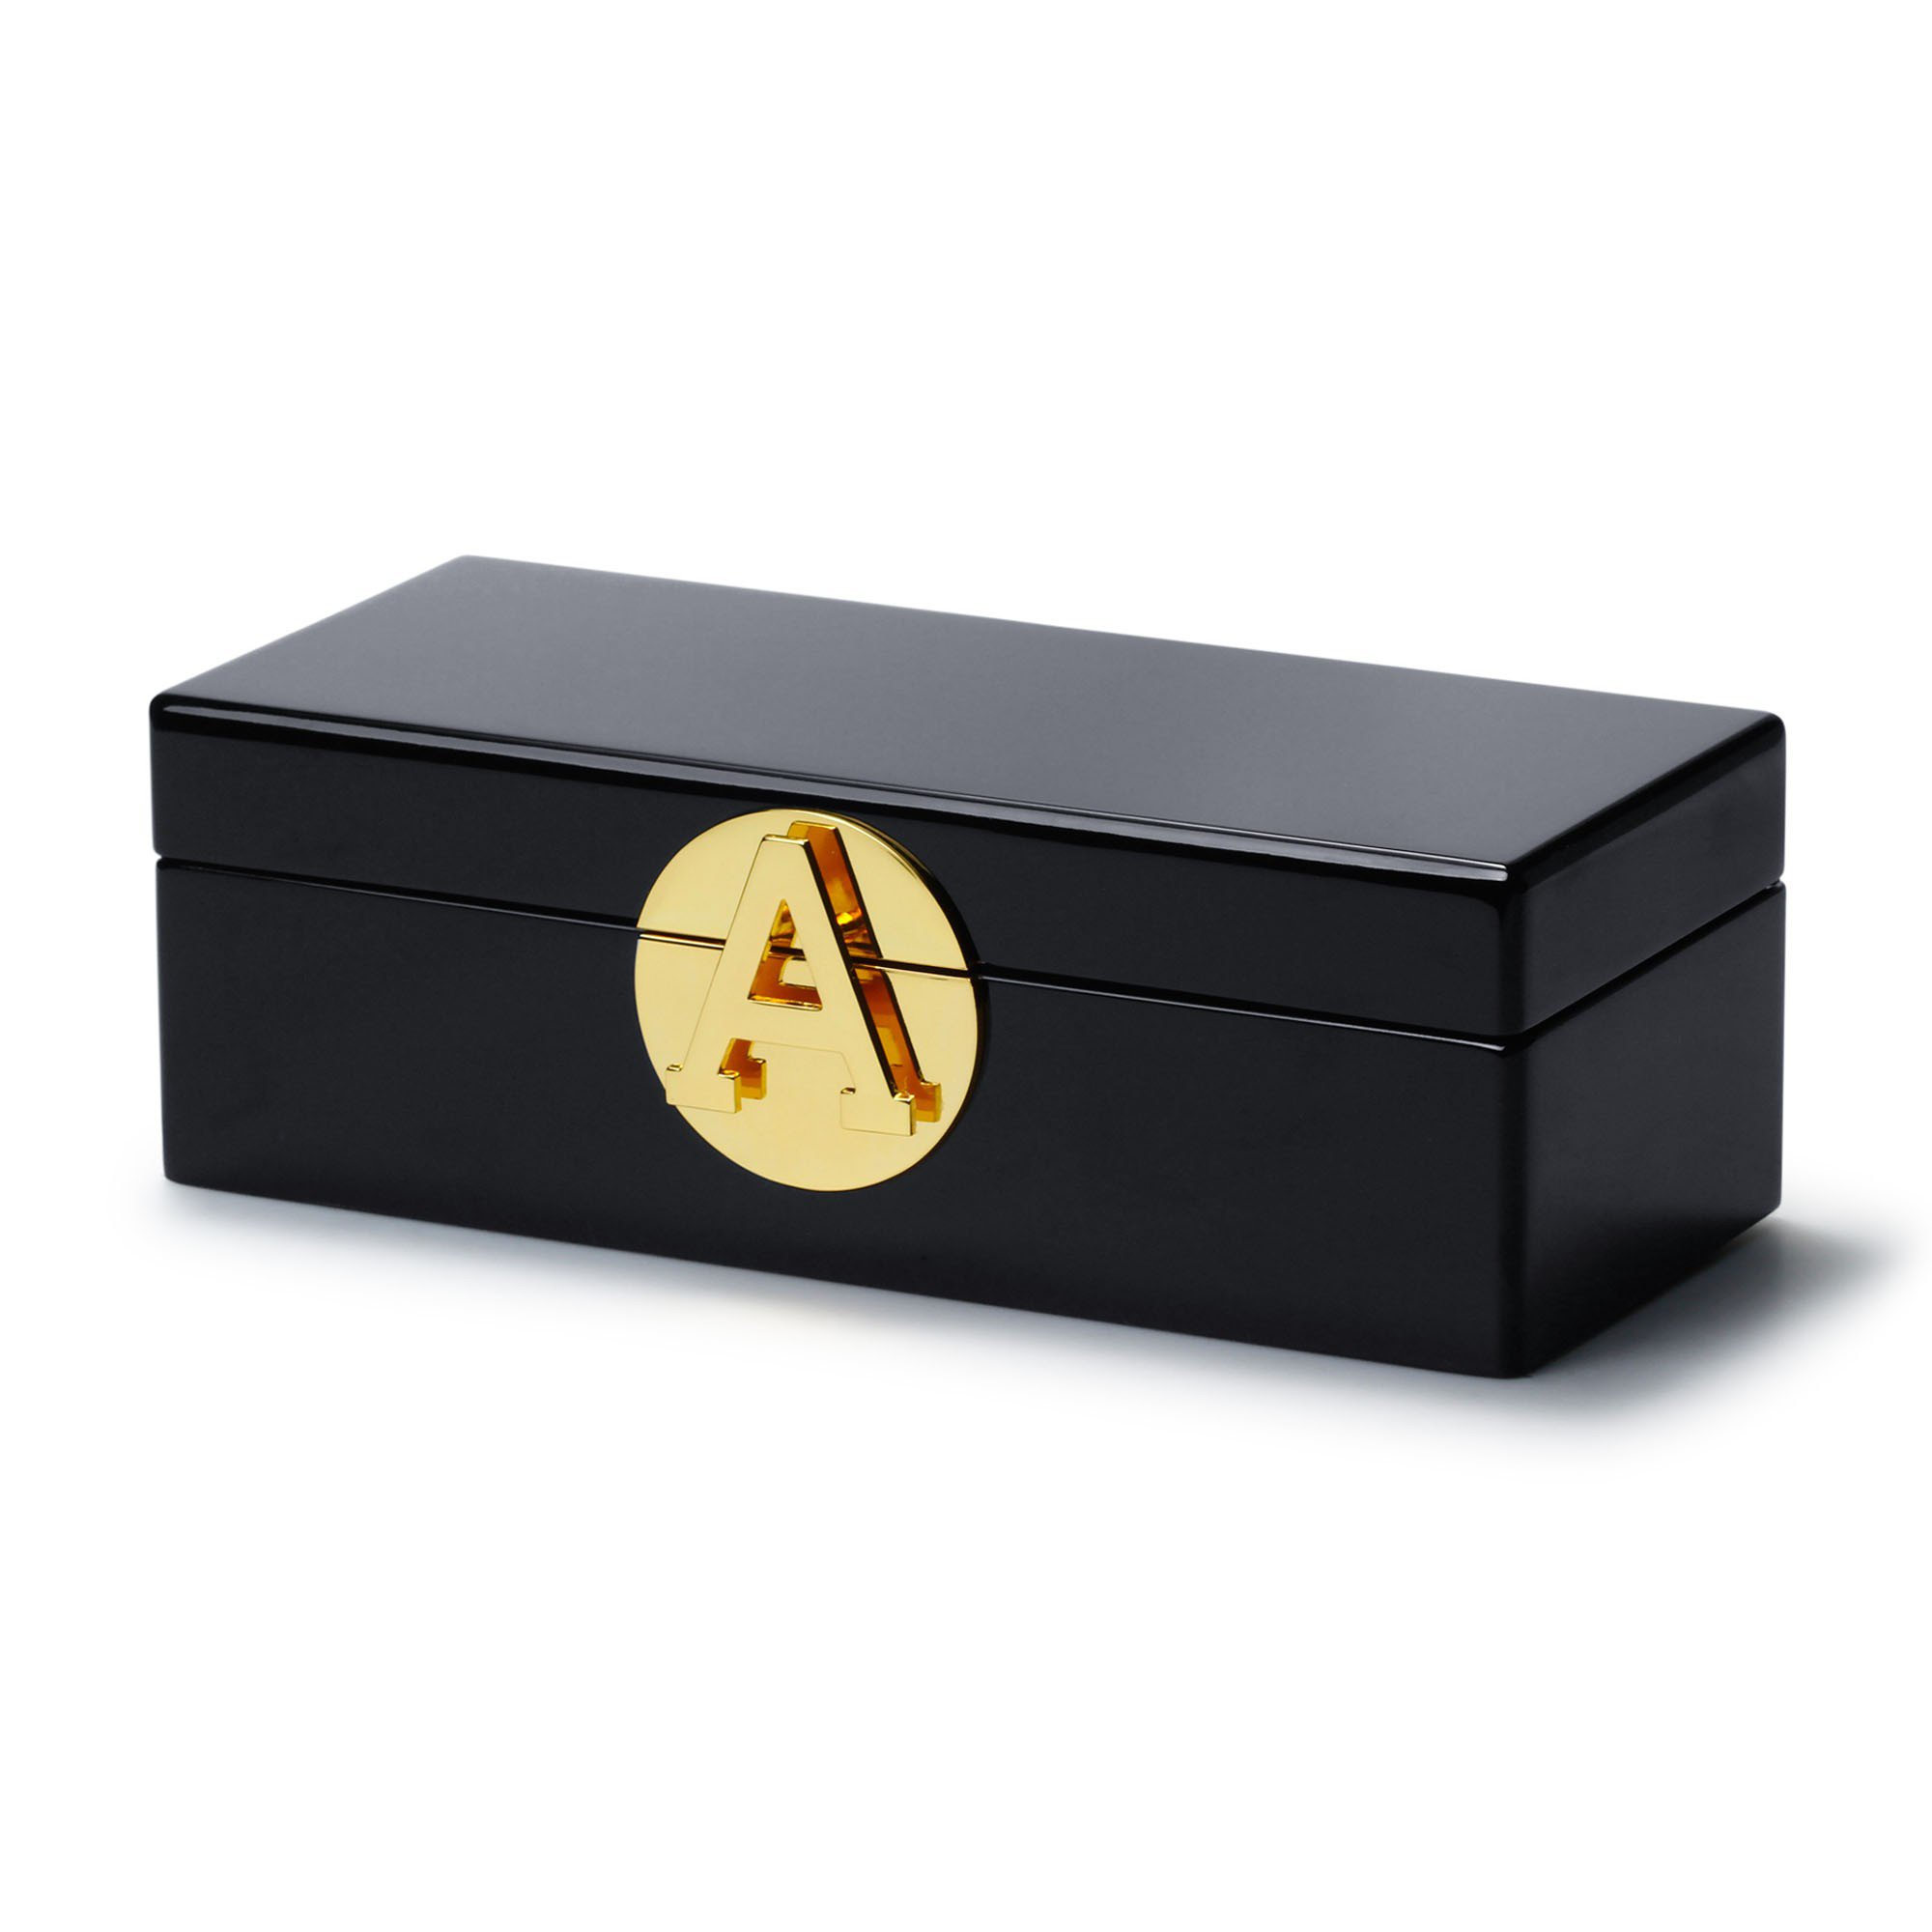 c wonder monogram jewelry box from c wonder epic